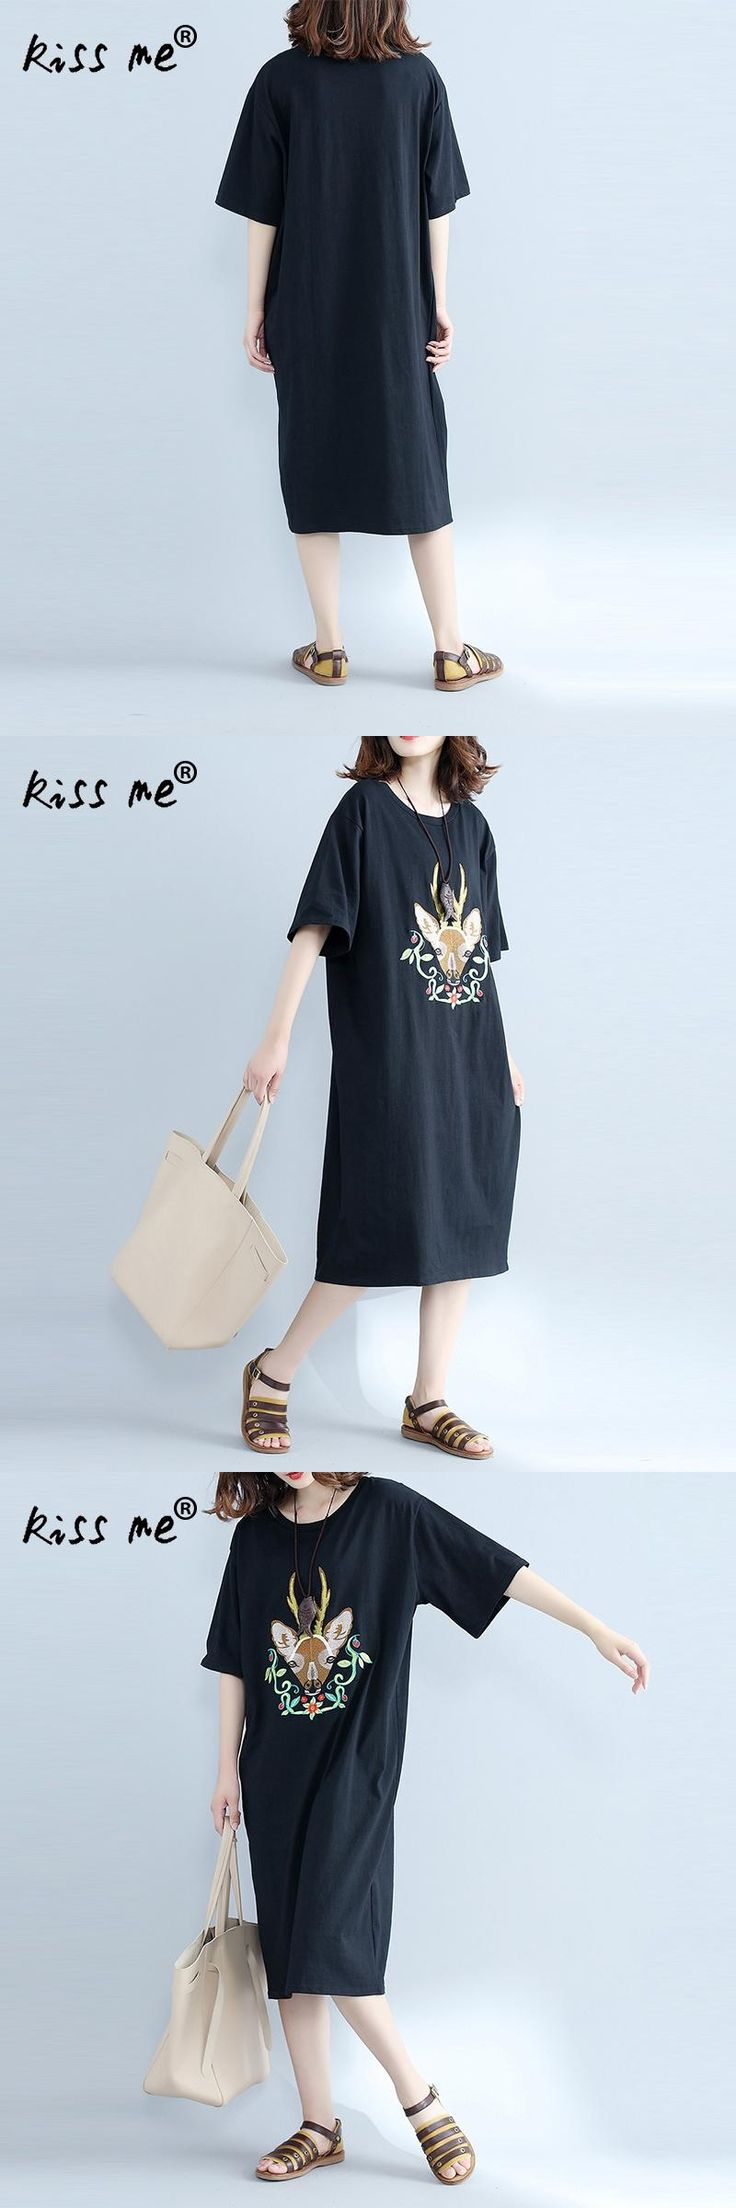 kiss me Loose T Shirt Dress Women Summer 2017 Brand Boho Vintage Black 3d Deer Embroidered Long Dress Casual Vestido Ladies Tops